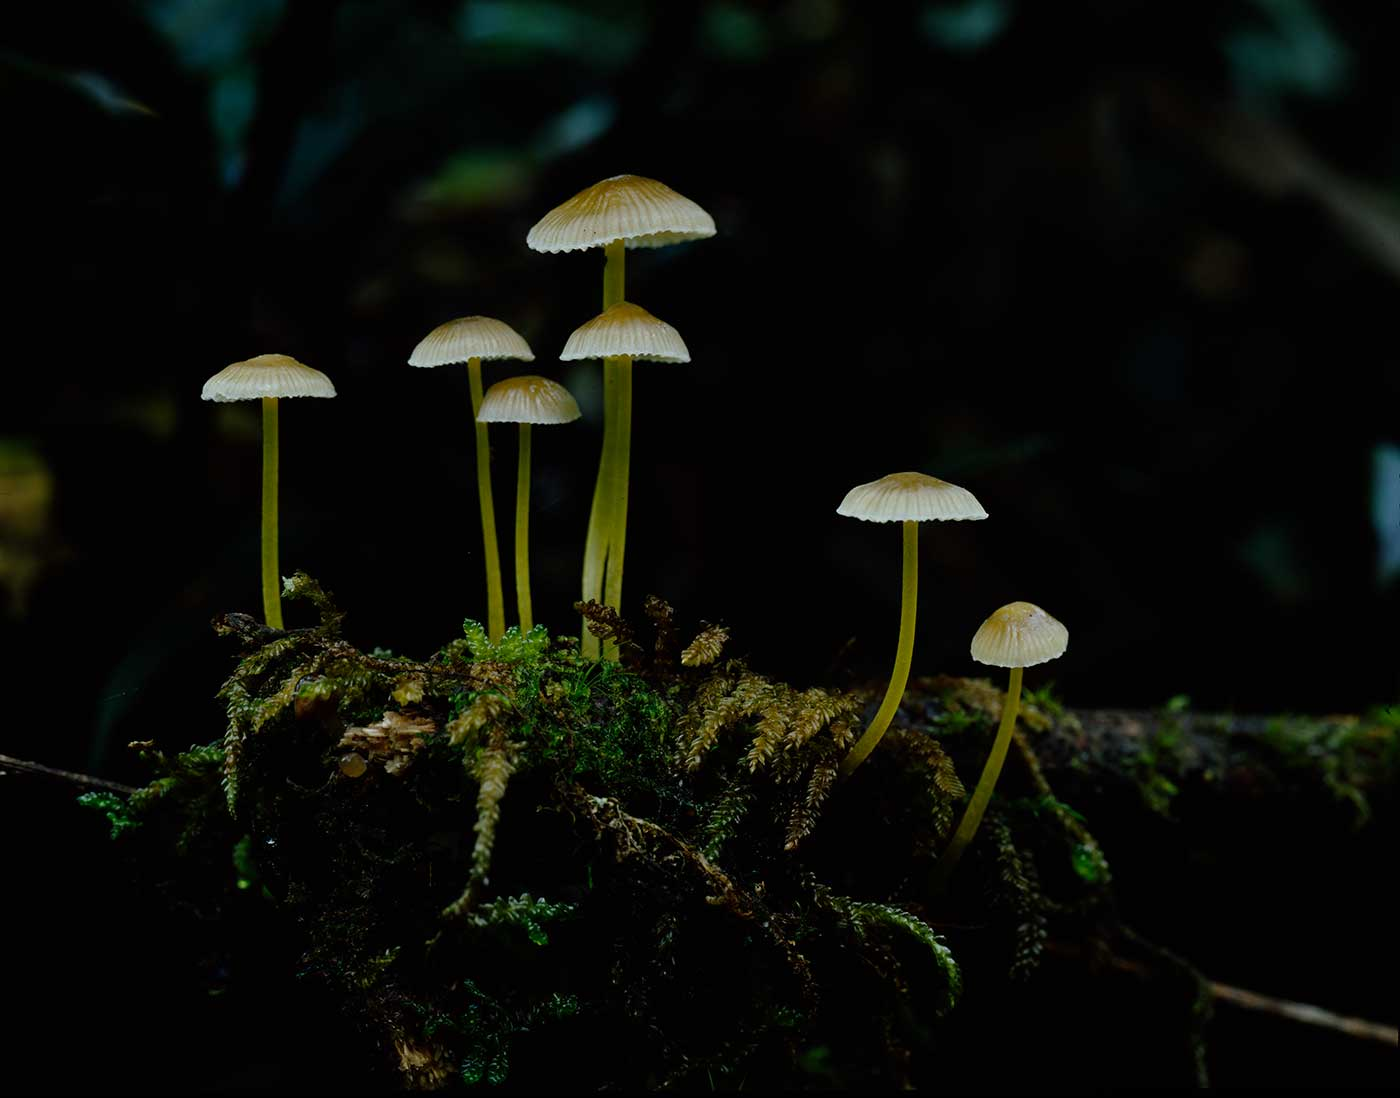 Colour photograph showing a close-up view of seven small fungi, growing from a mossy base.  - click to view larger image